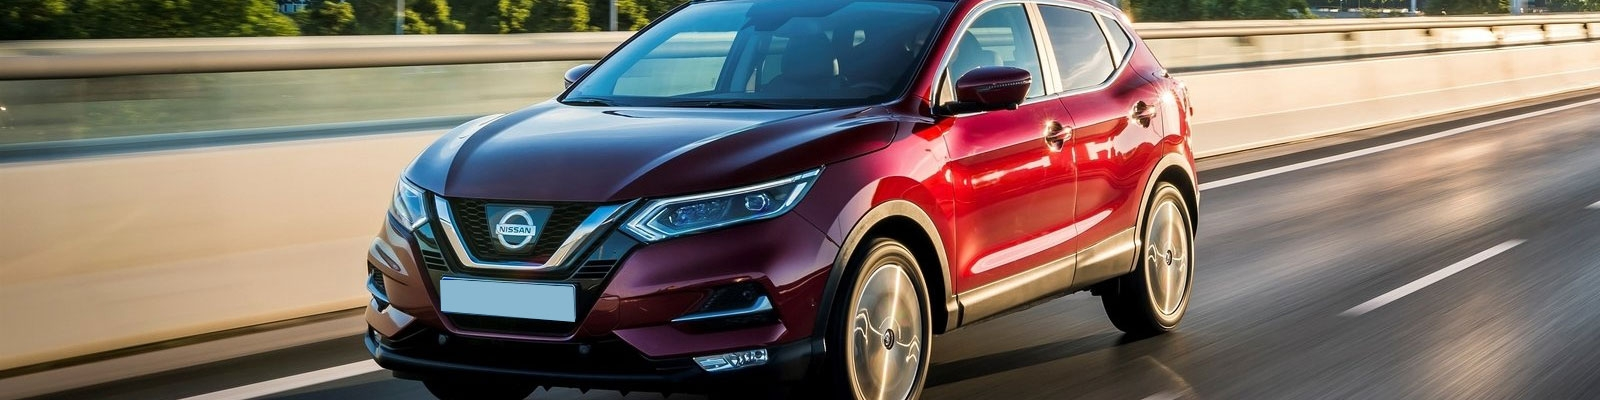 Accessories for Nissan Qashqai